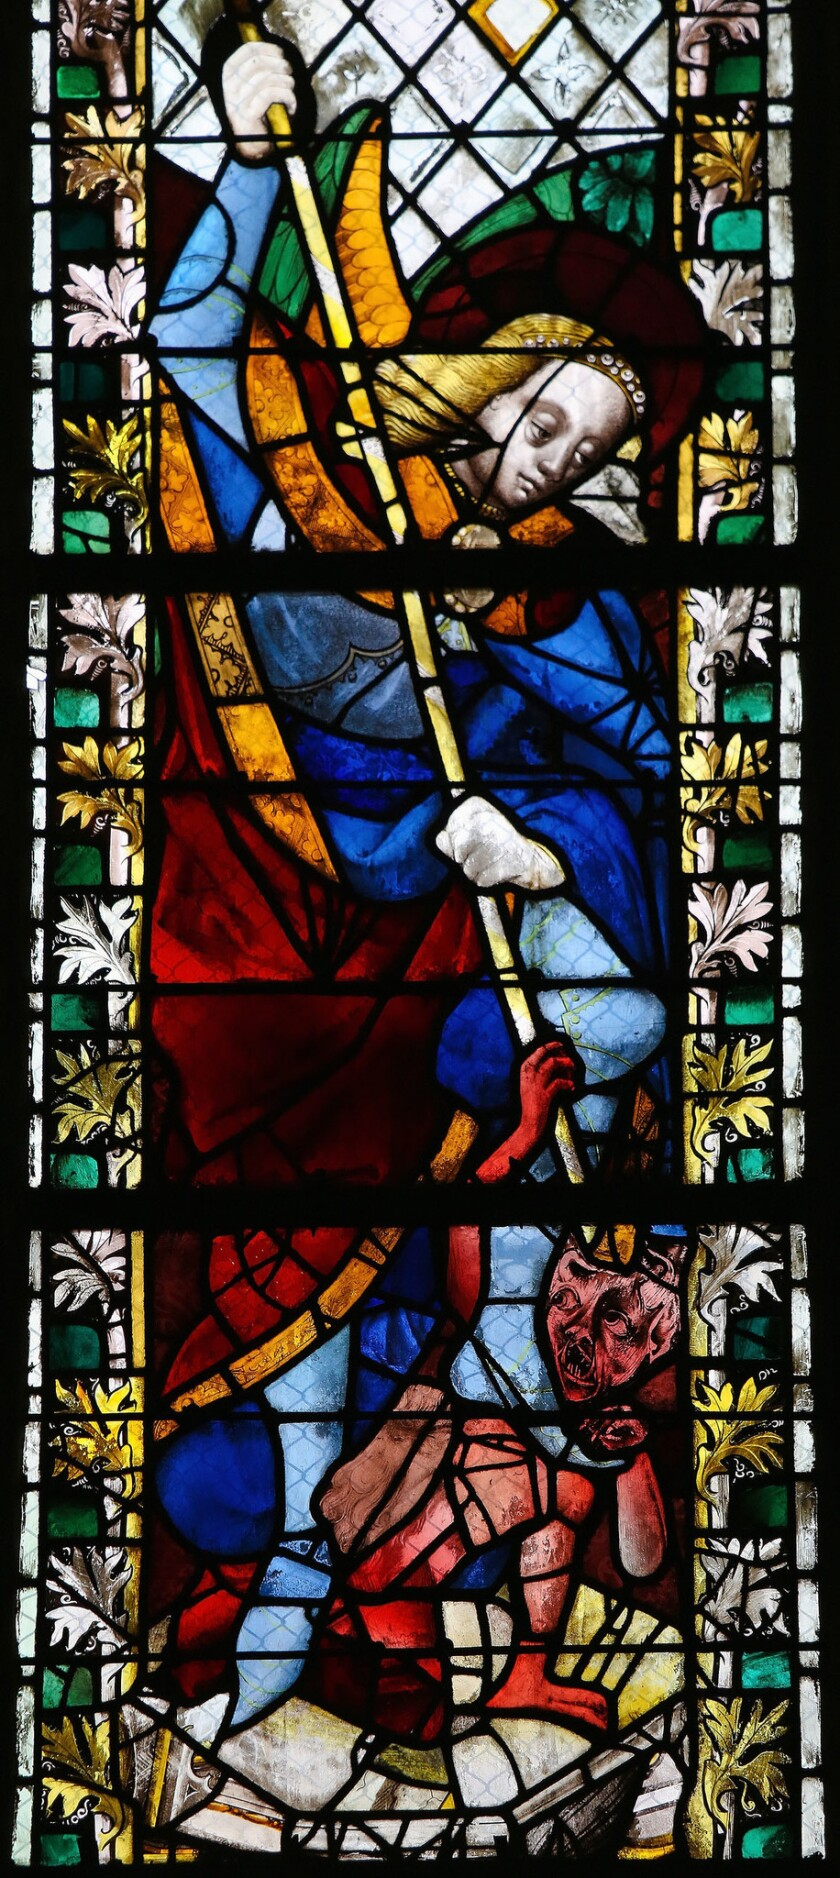 Saint Michael trampling Satan on a stained glass in the cathedral of Rouen, France.